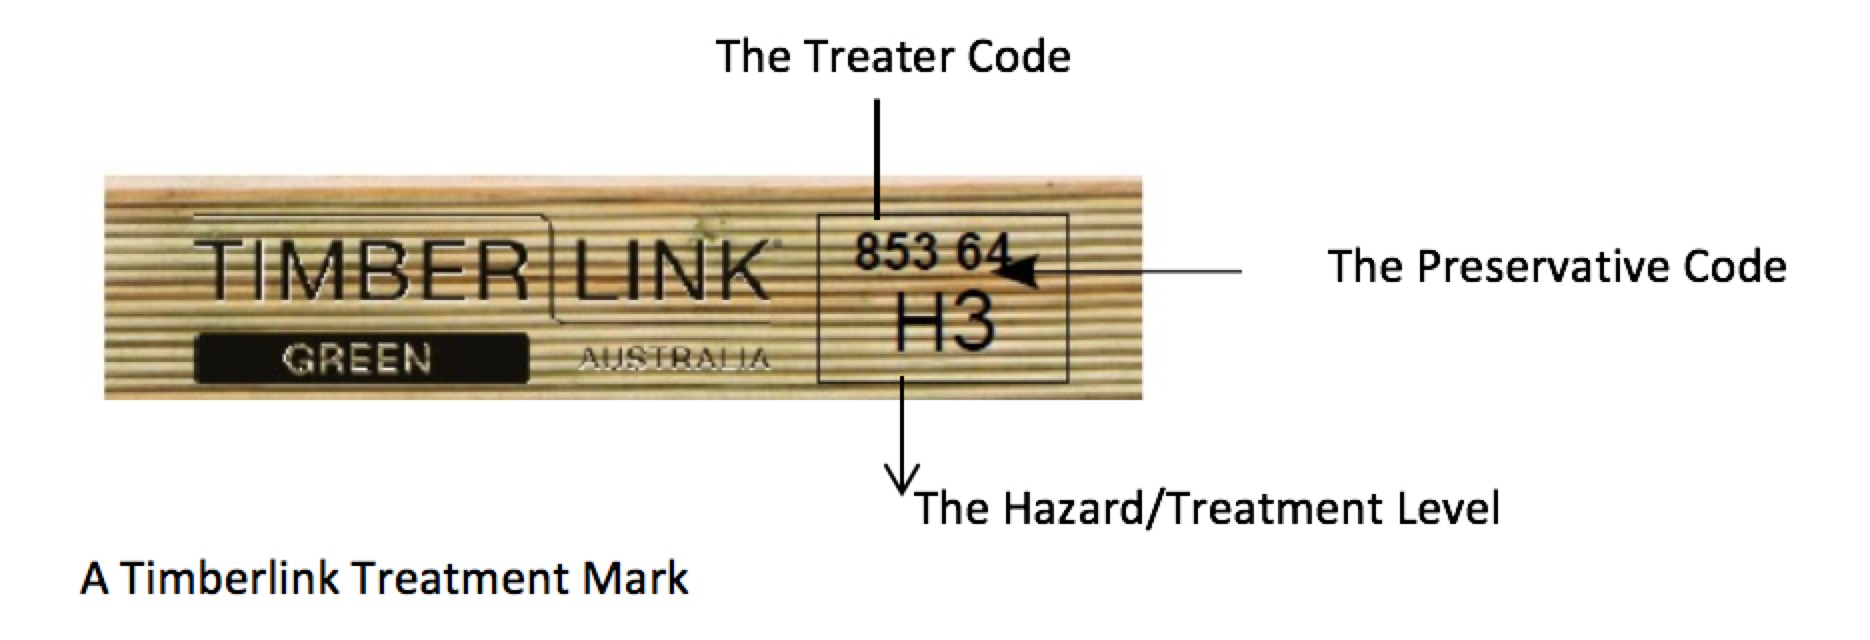 timberlink treatment mark